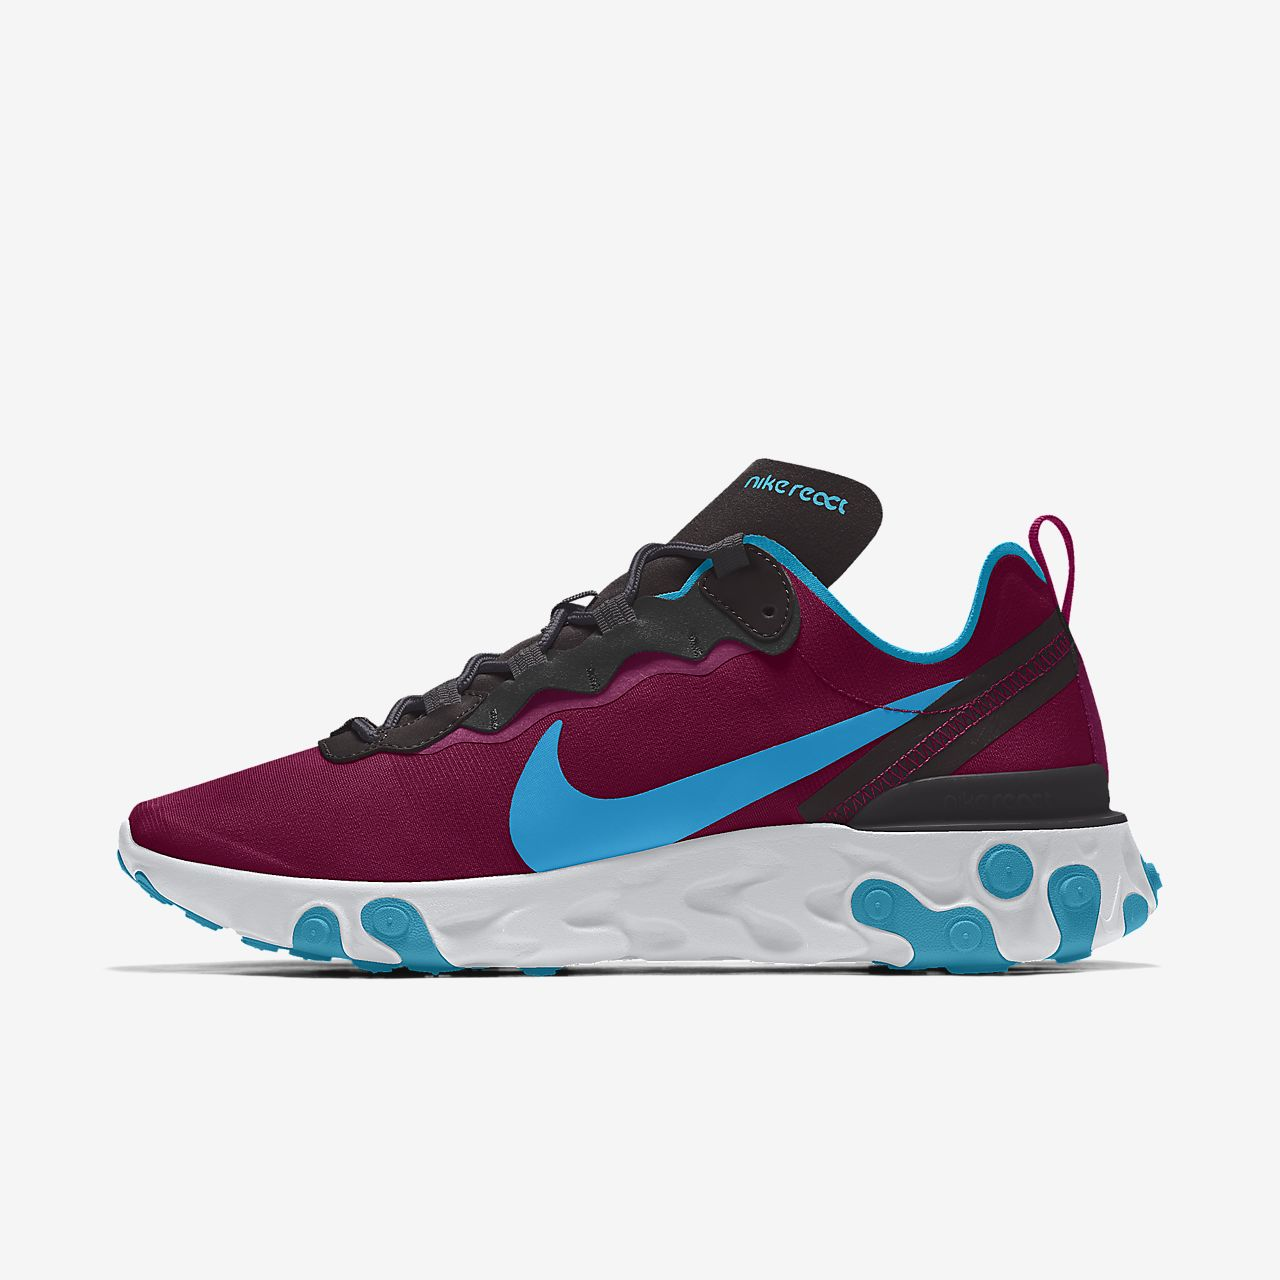 Calzado Lifestyle para mujer personalizado Nike React Element 55 By You